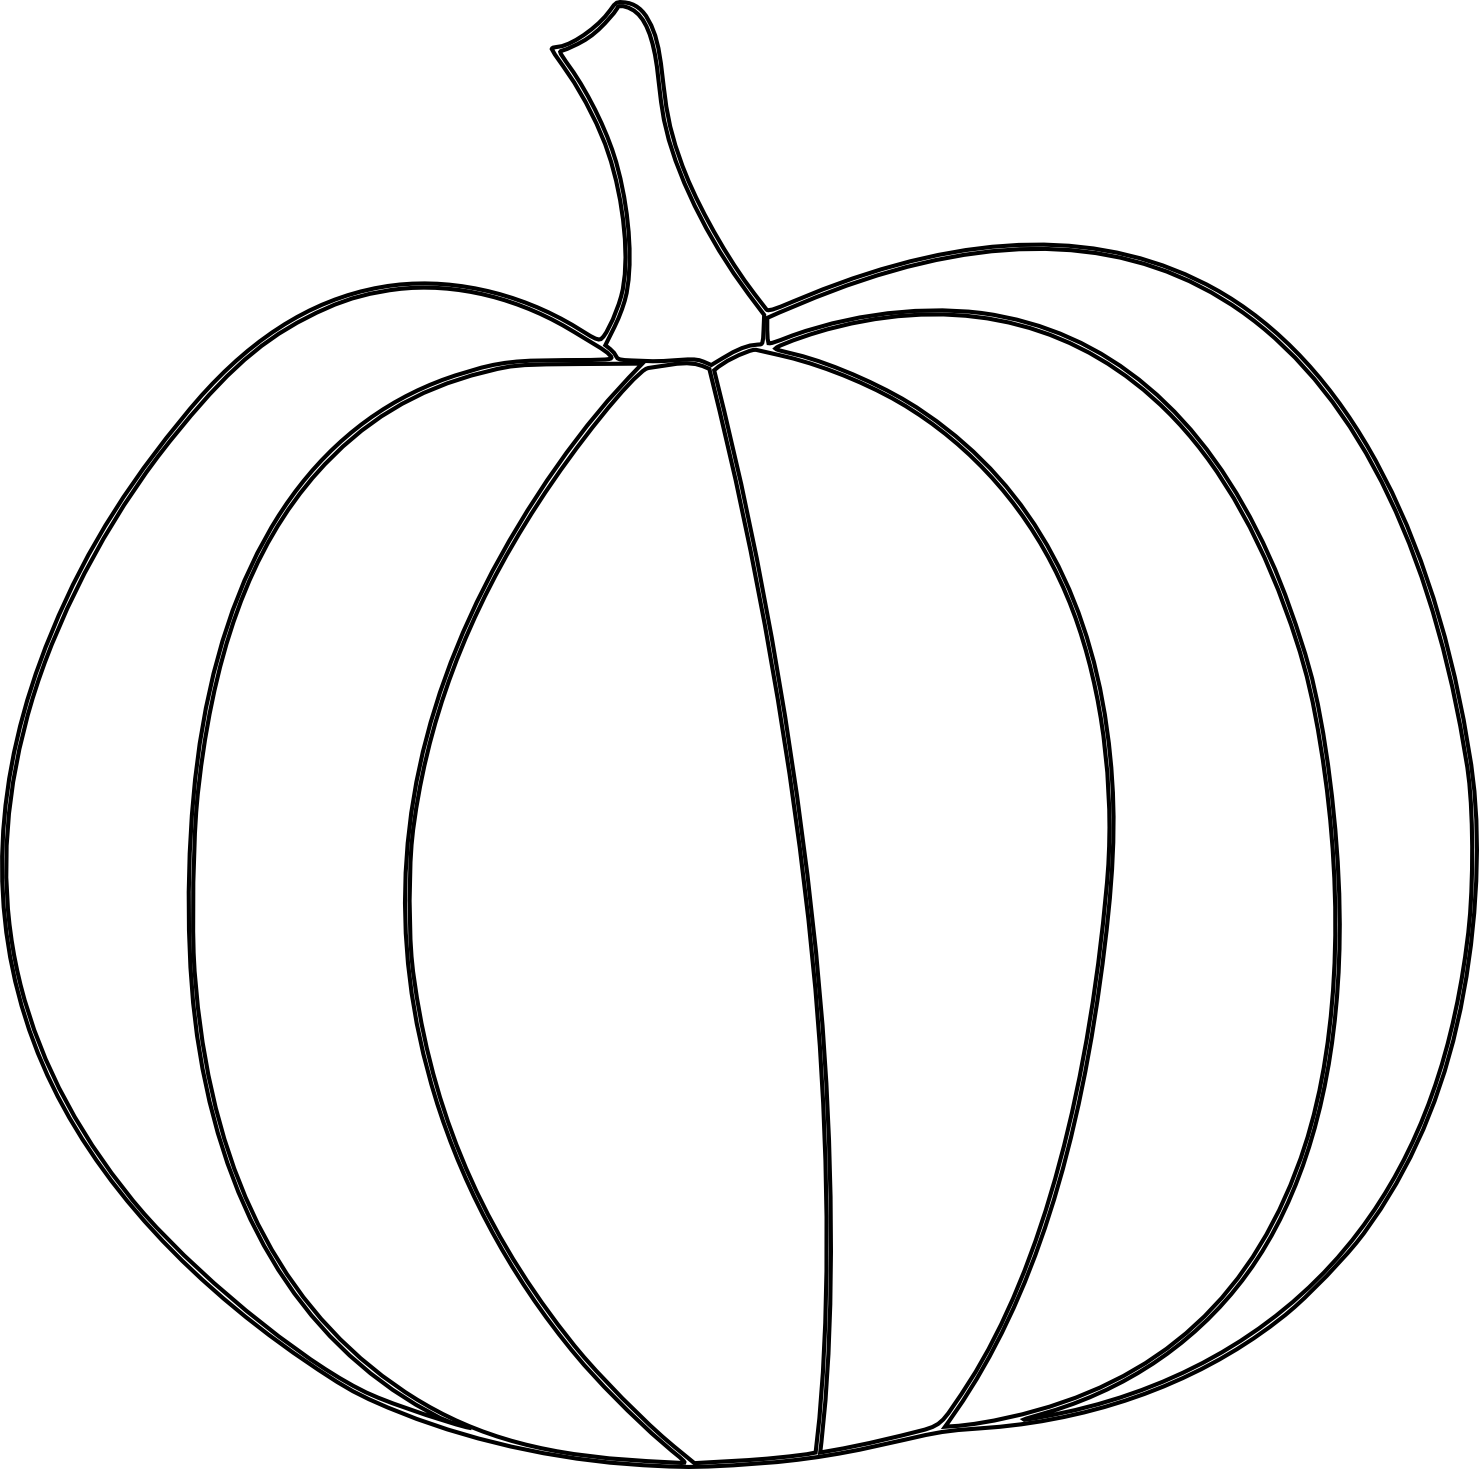 Thanksgiving pictures to draw easy clipart clip black and white 28+ Collection of Pumpkin Line Drawing | High quality, free cliparts ... clip black and white